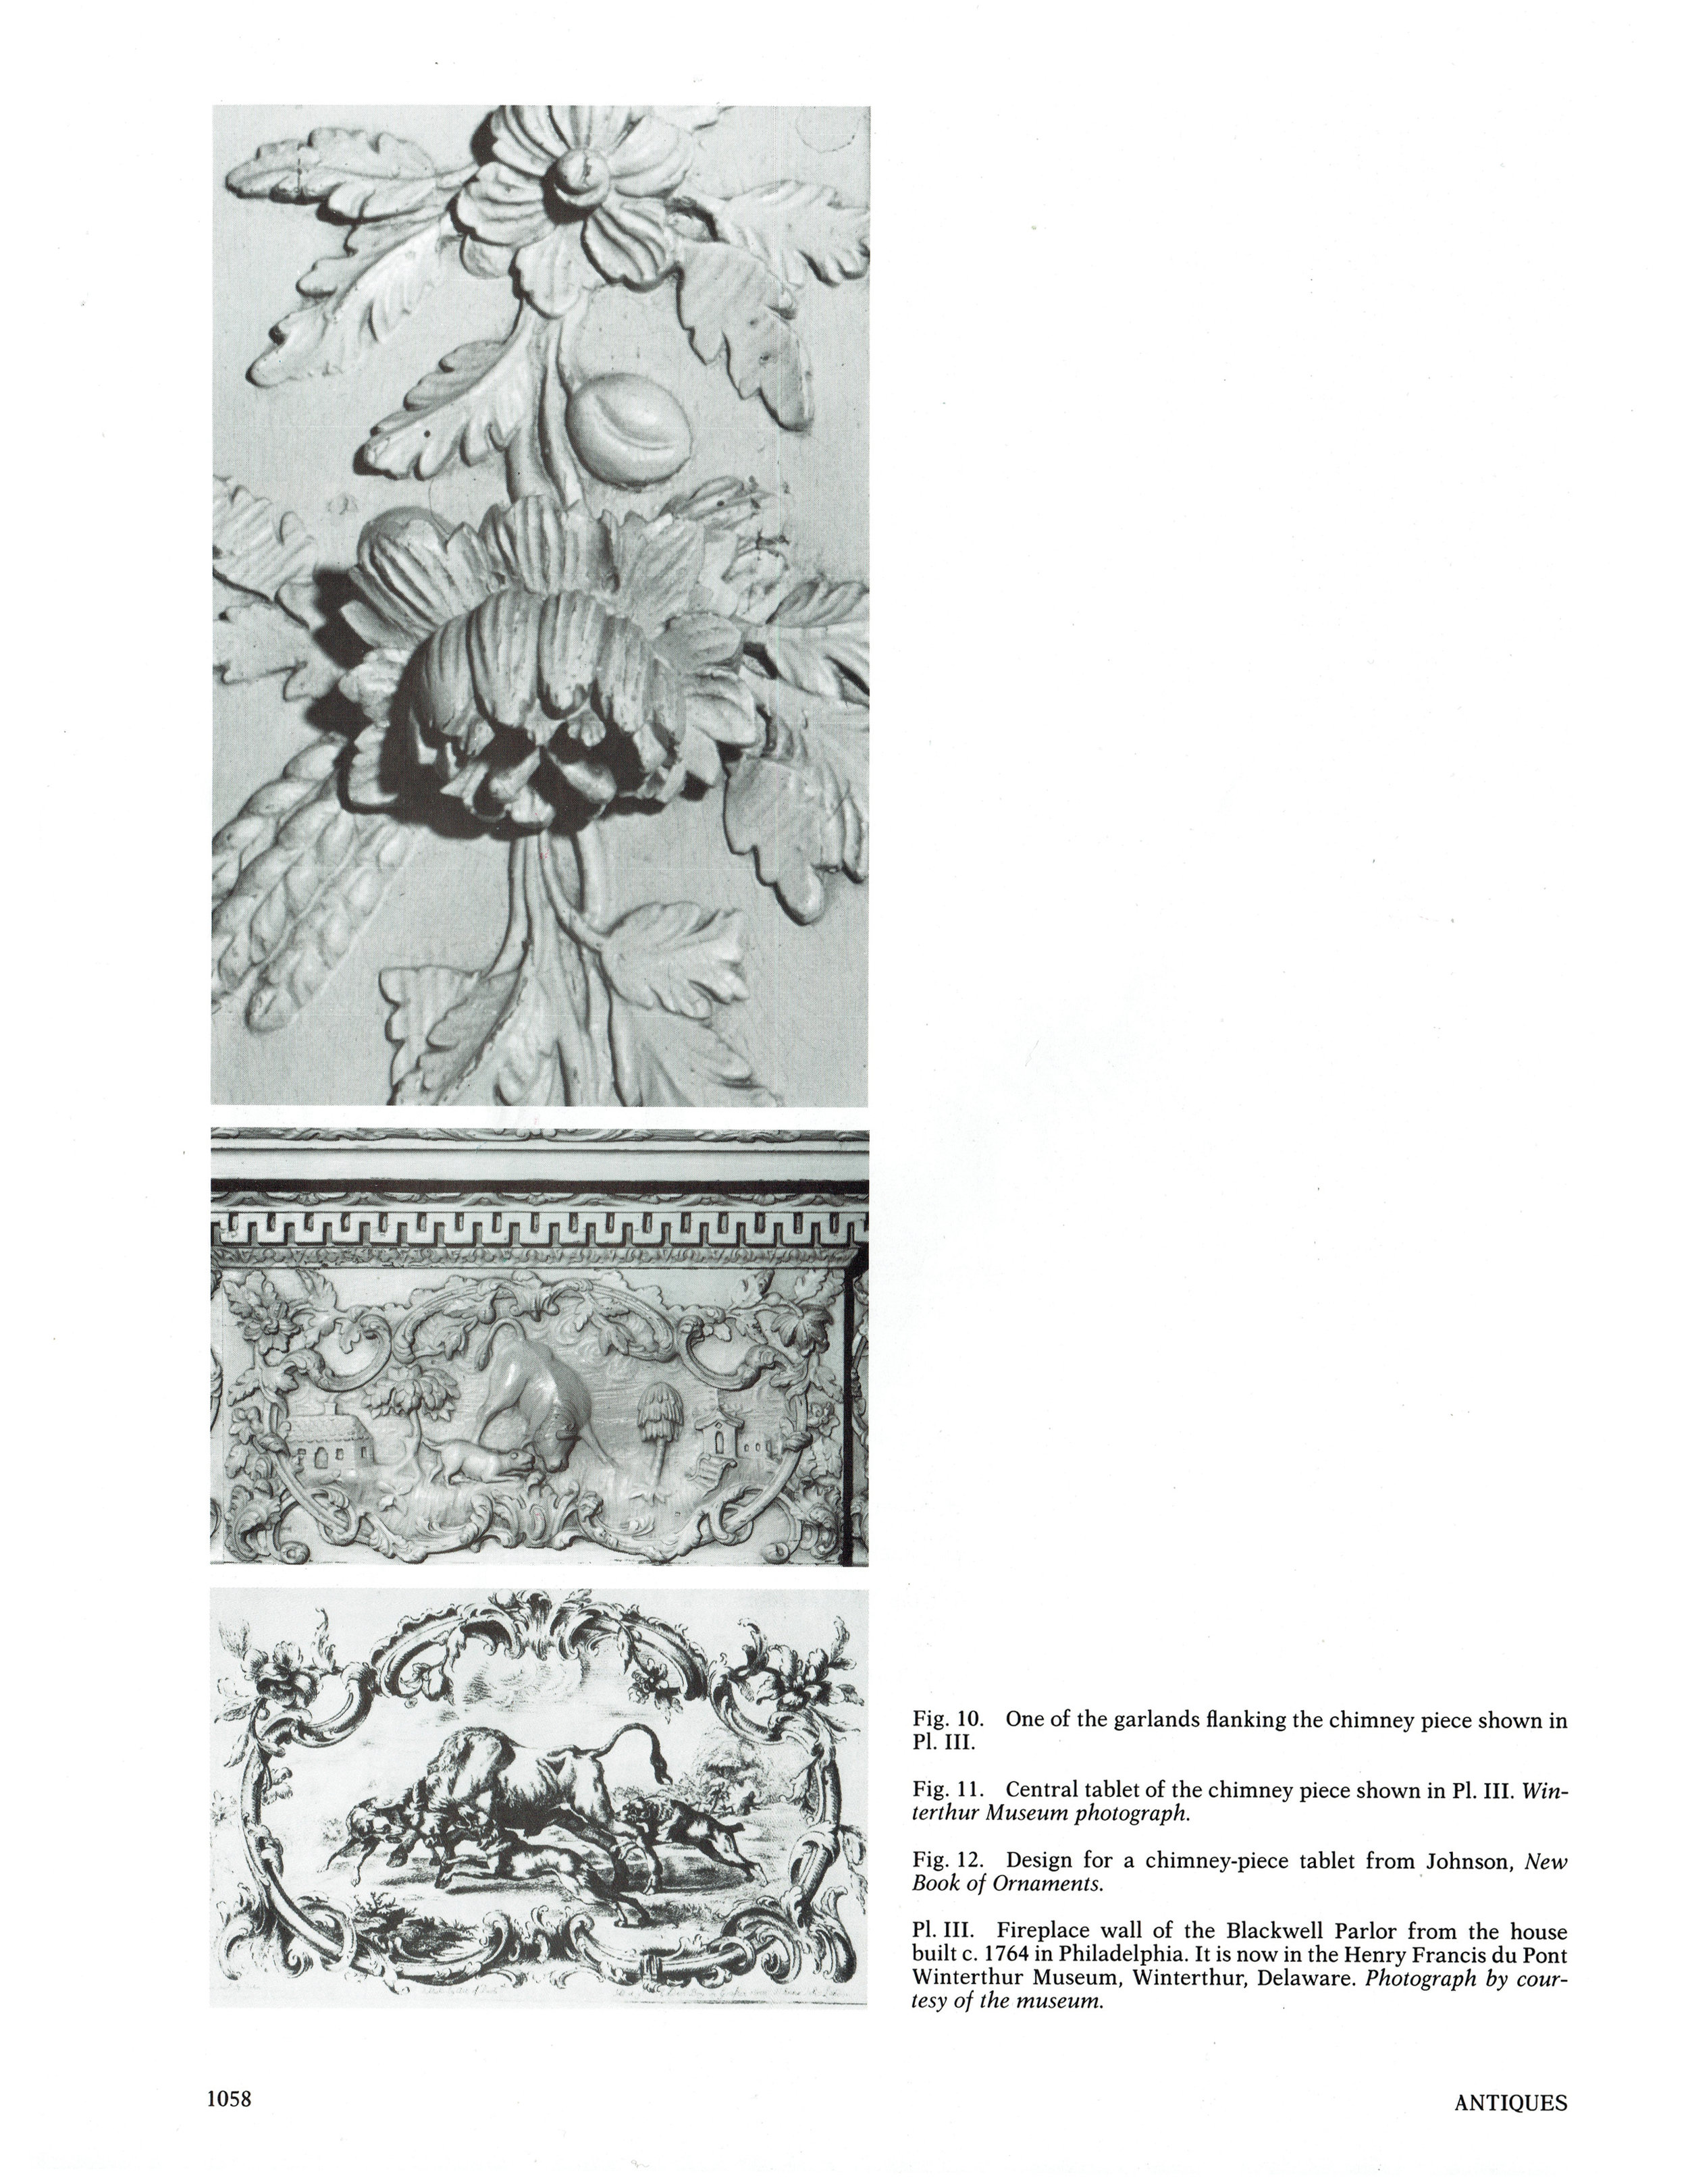 2018.01.16 CPF Antiques Article 16 - Pg1058.jpg